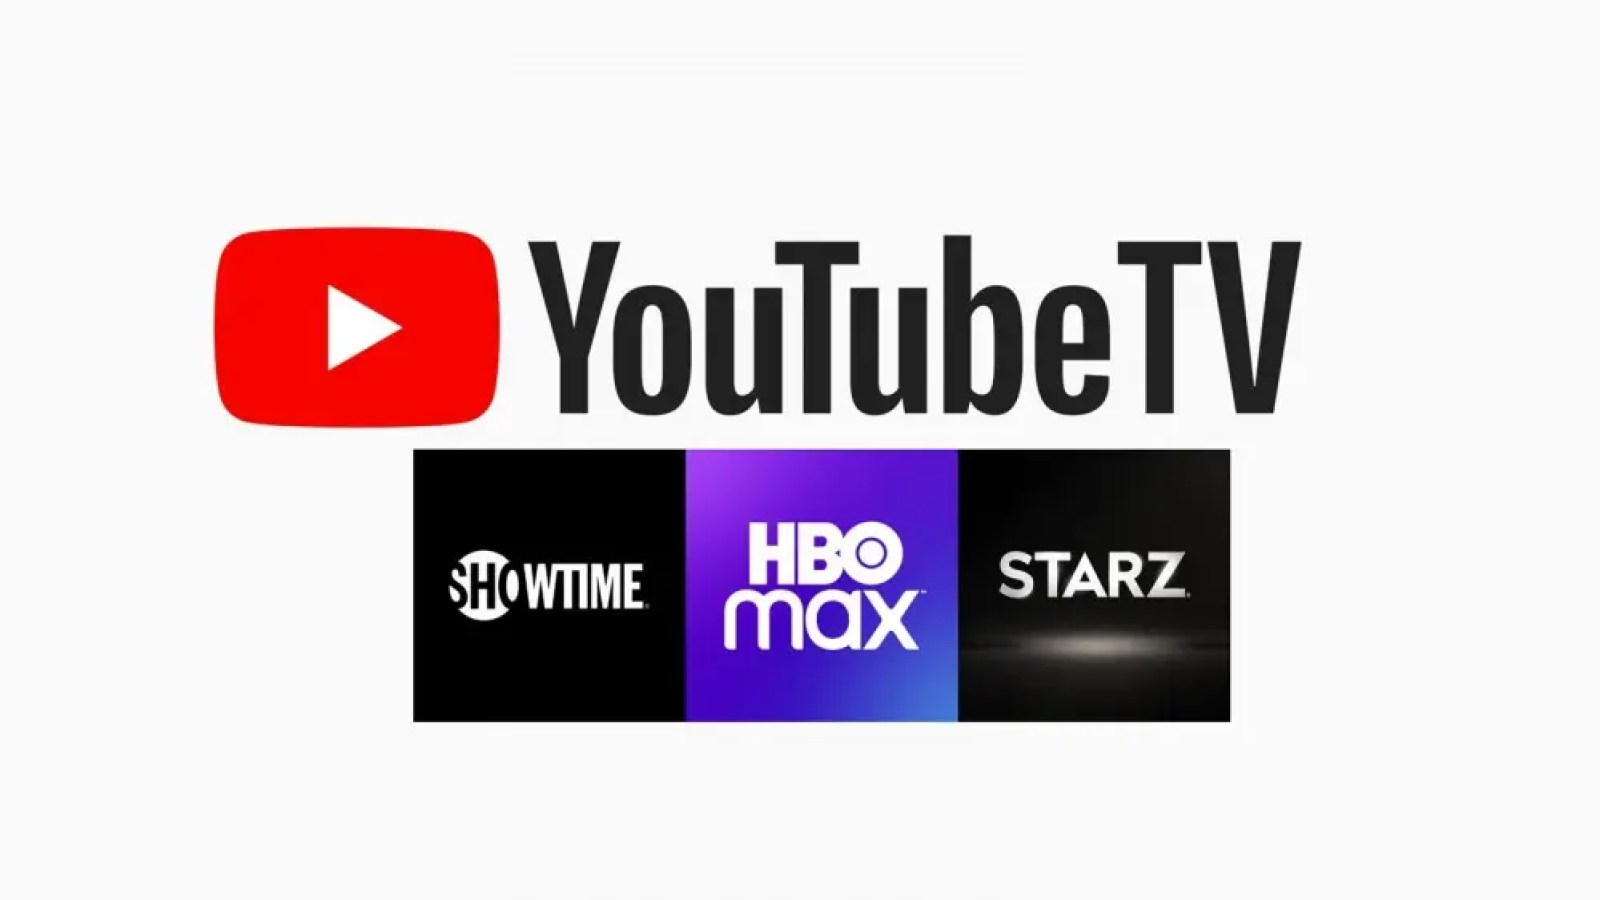 The YouTube TV logo over the Showtime, HBO max, and Starz logos.